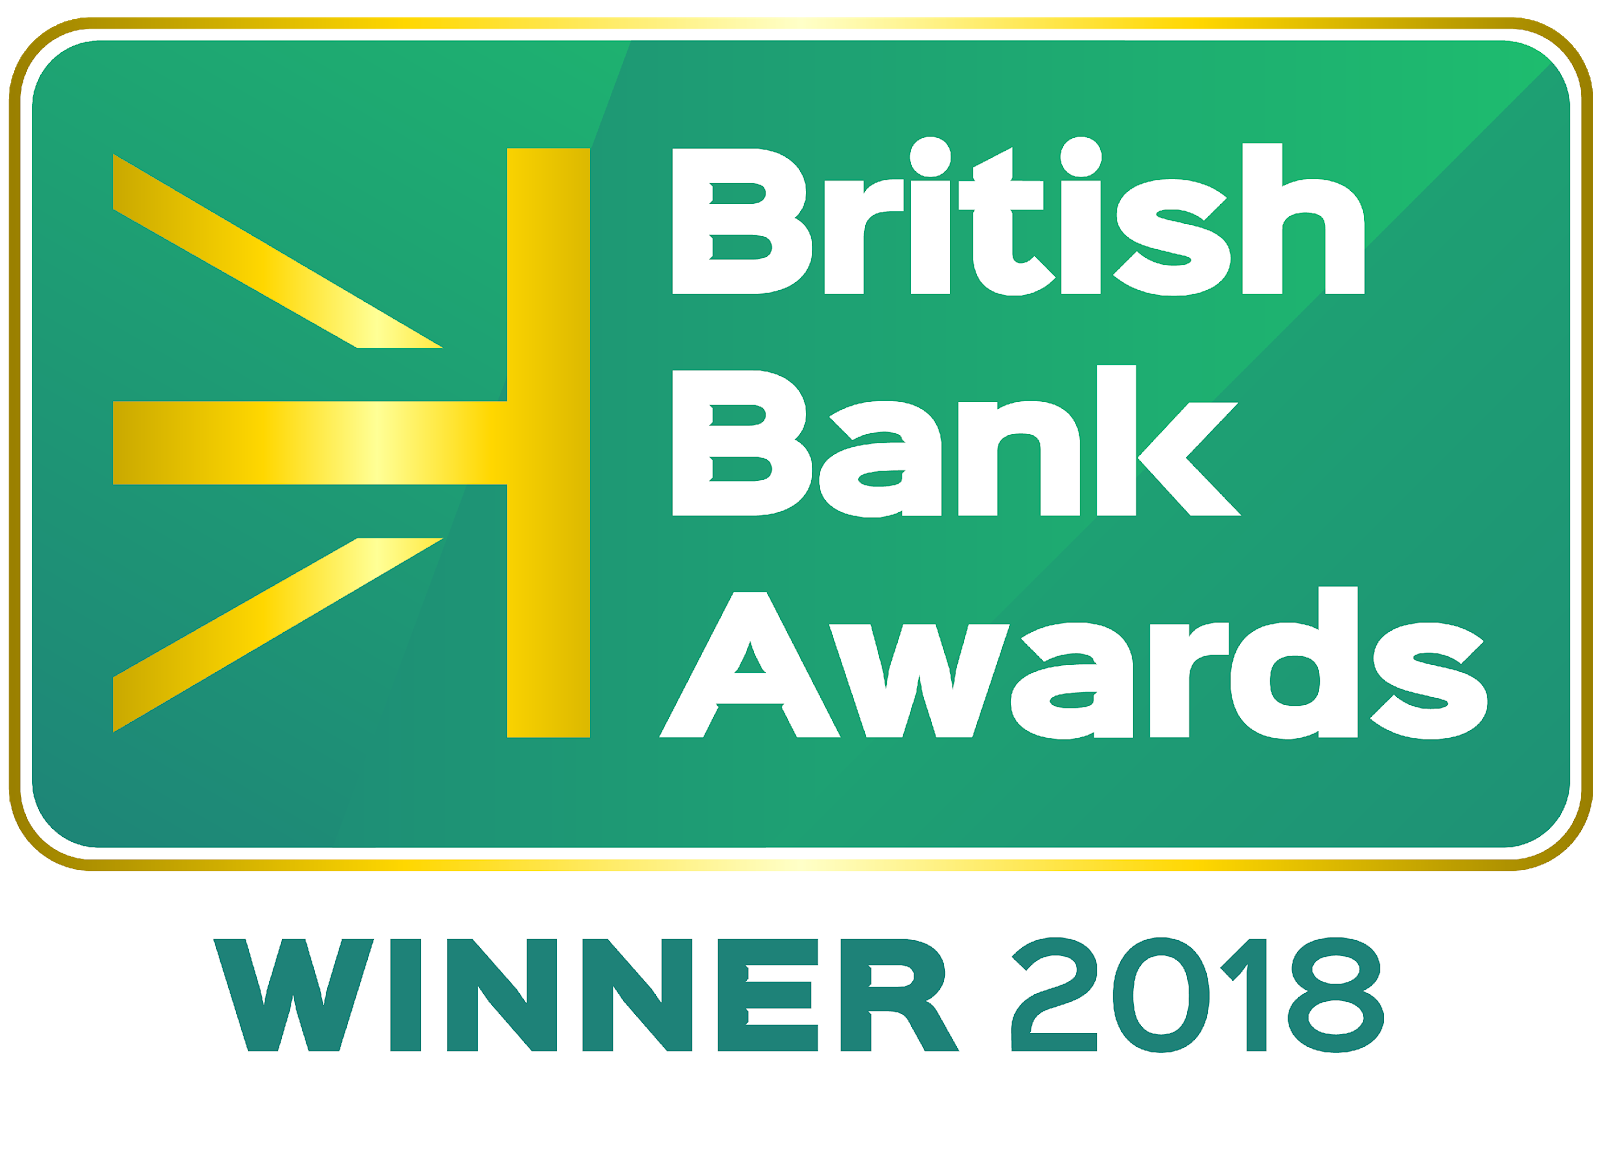 British Banking awards winner